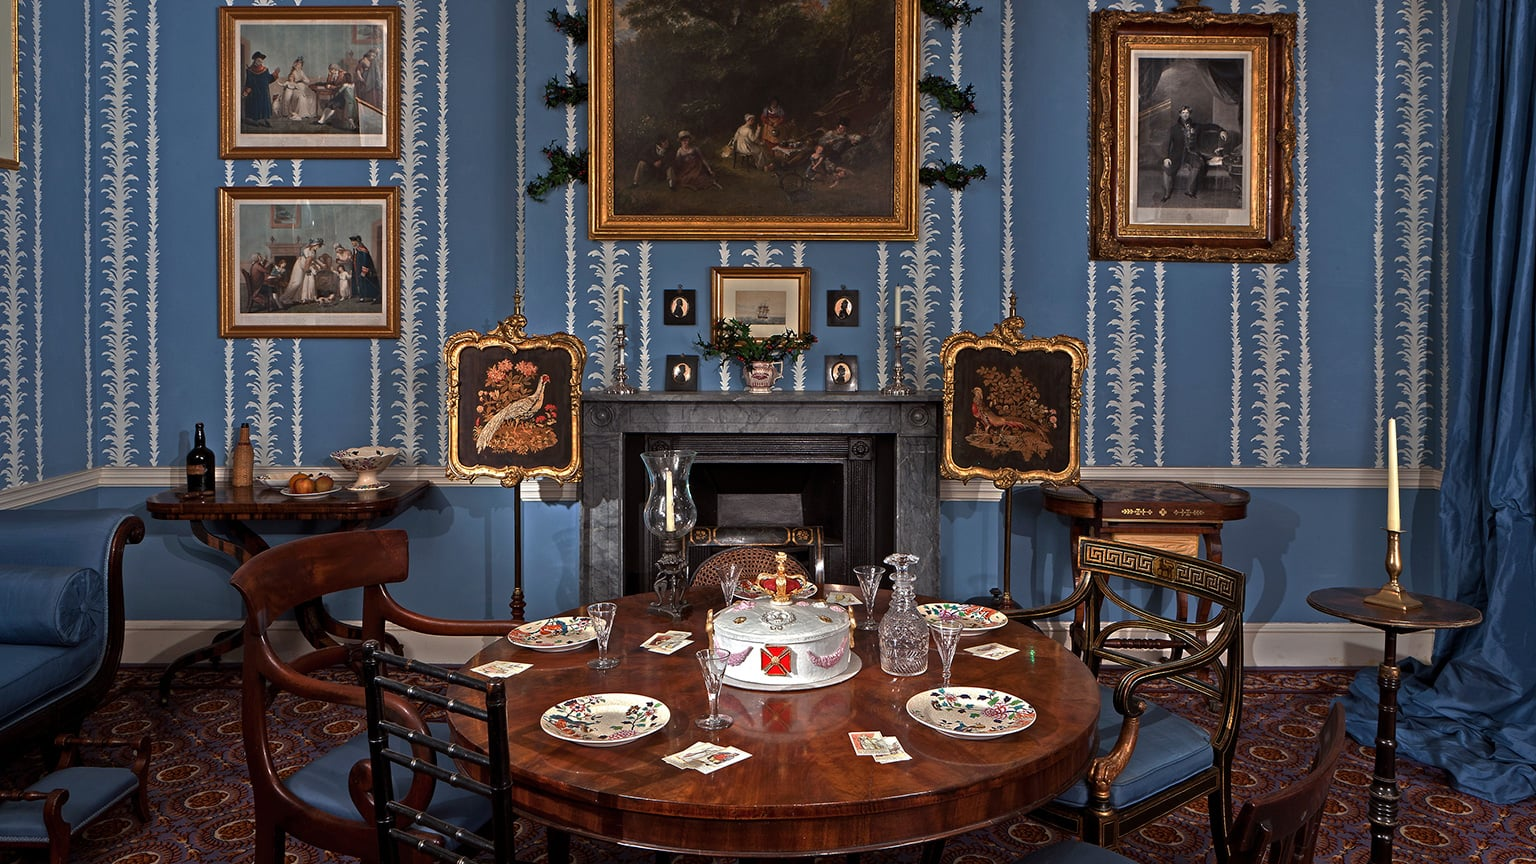 Christmas Past: A drawing room in 1830